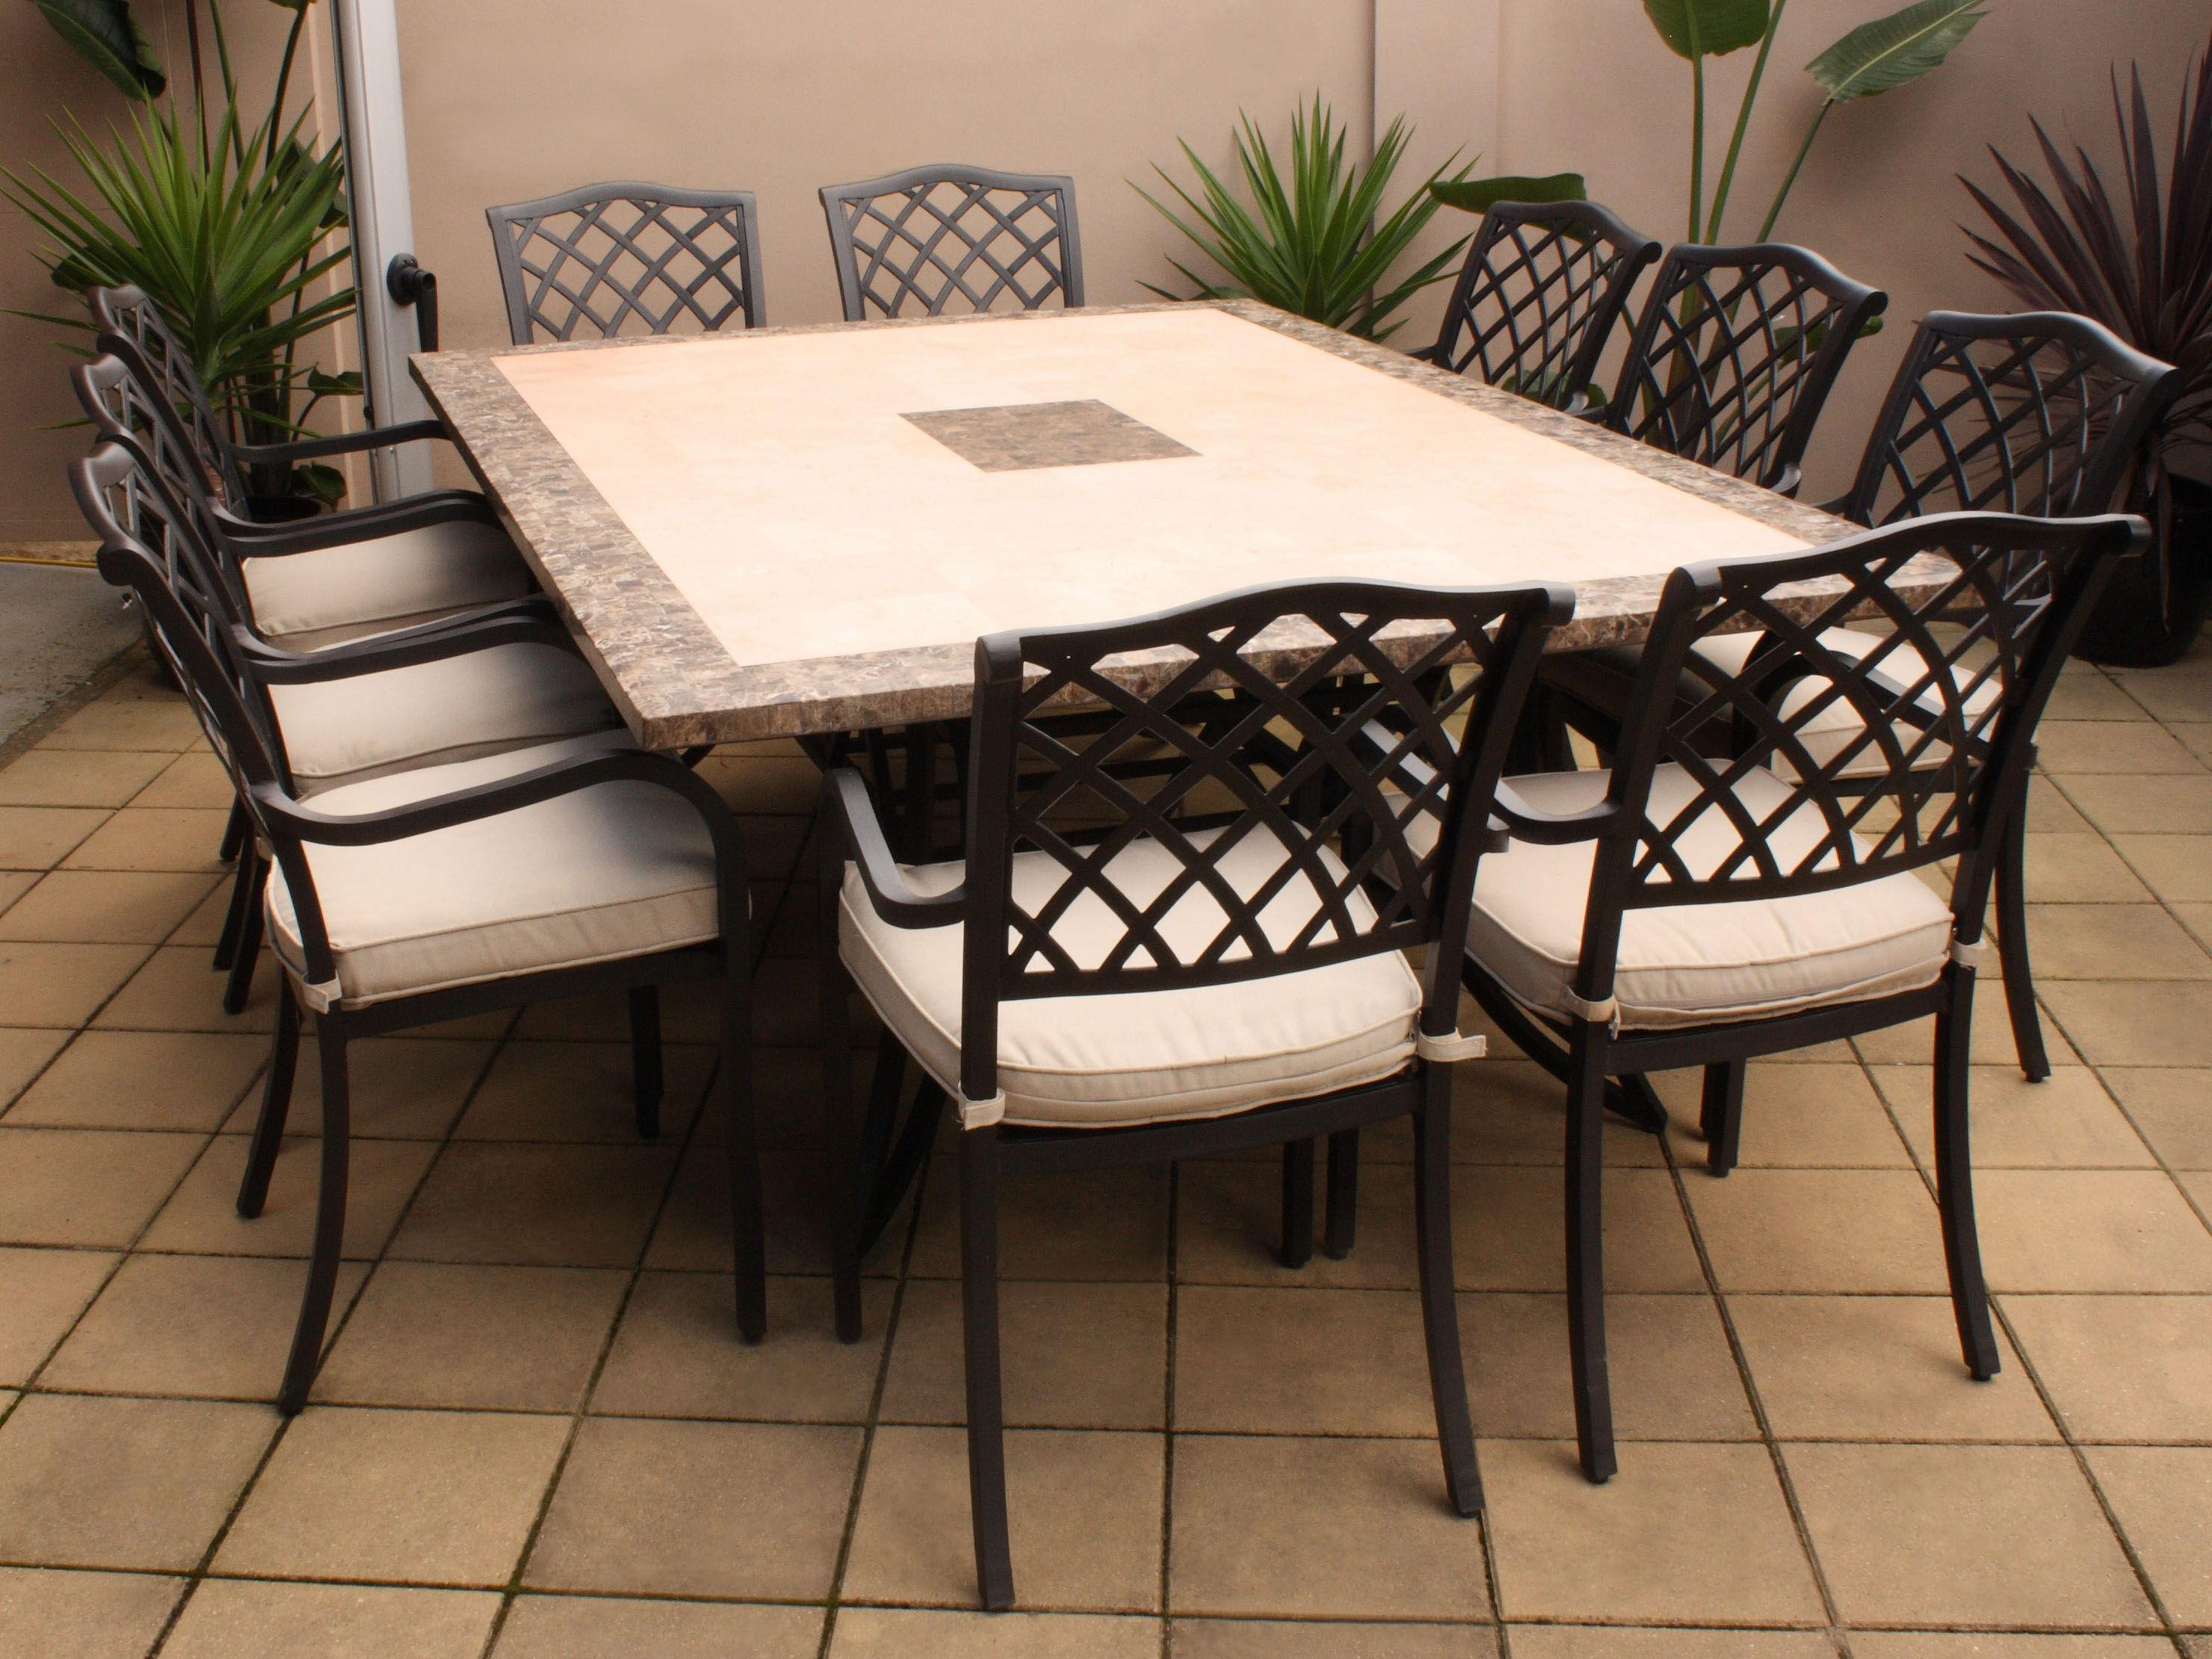 d furniture fascinating design finest dcor costco gallery covers patio cor